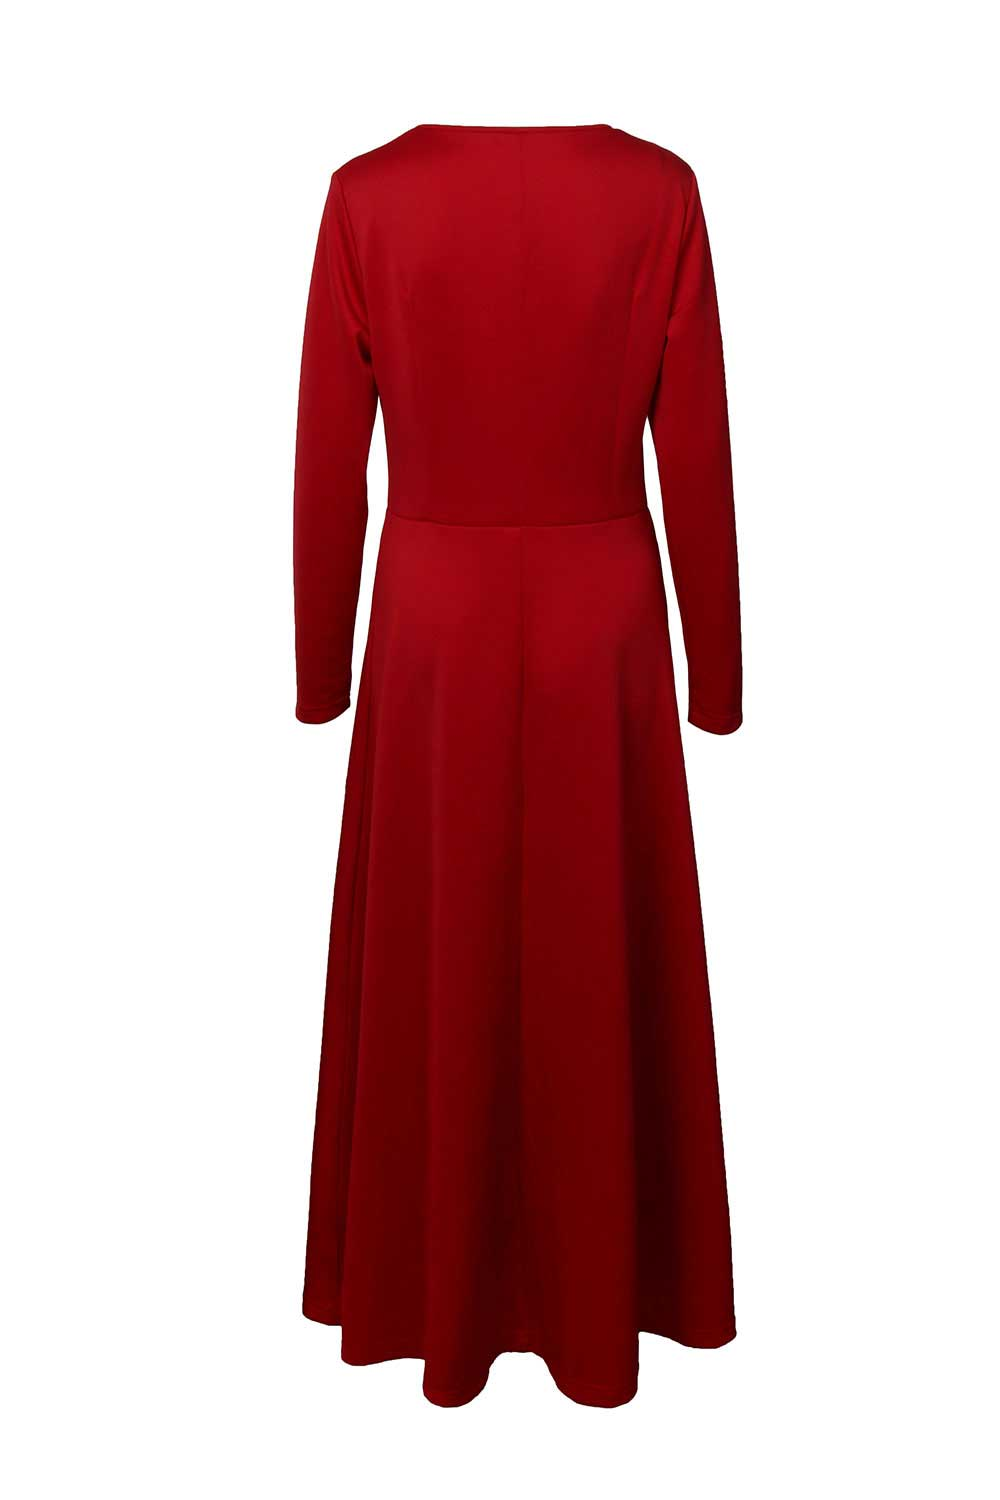 The Handmaid's Tale June Osborne Red Dress For Halloween Party